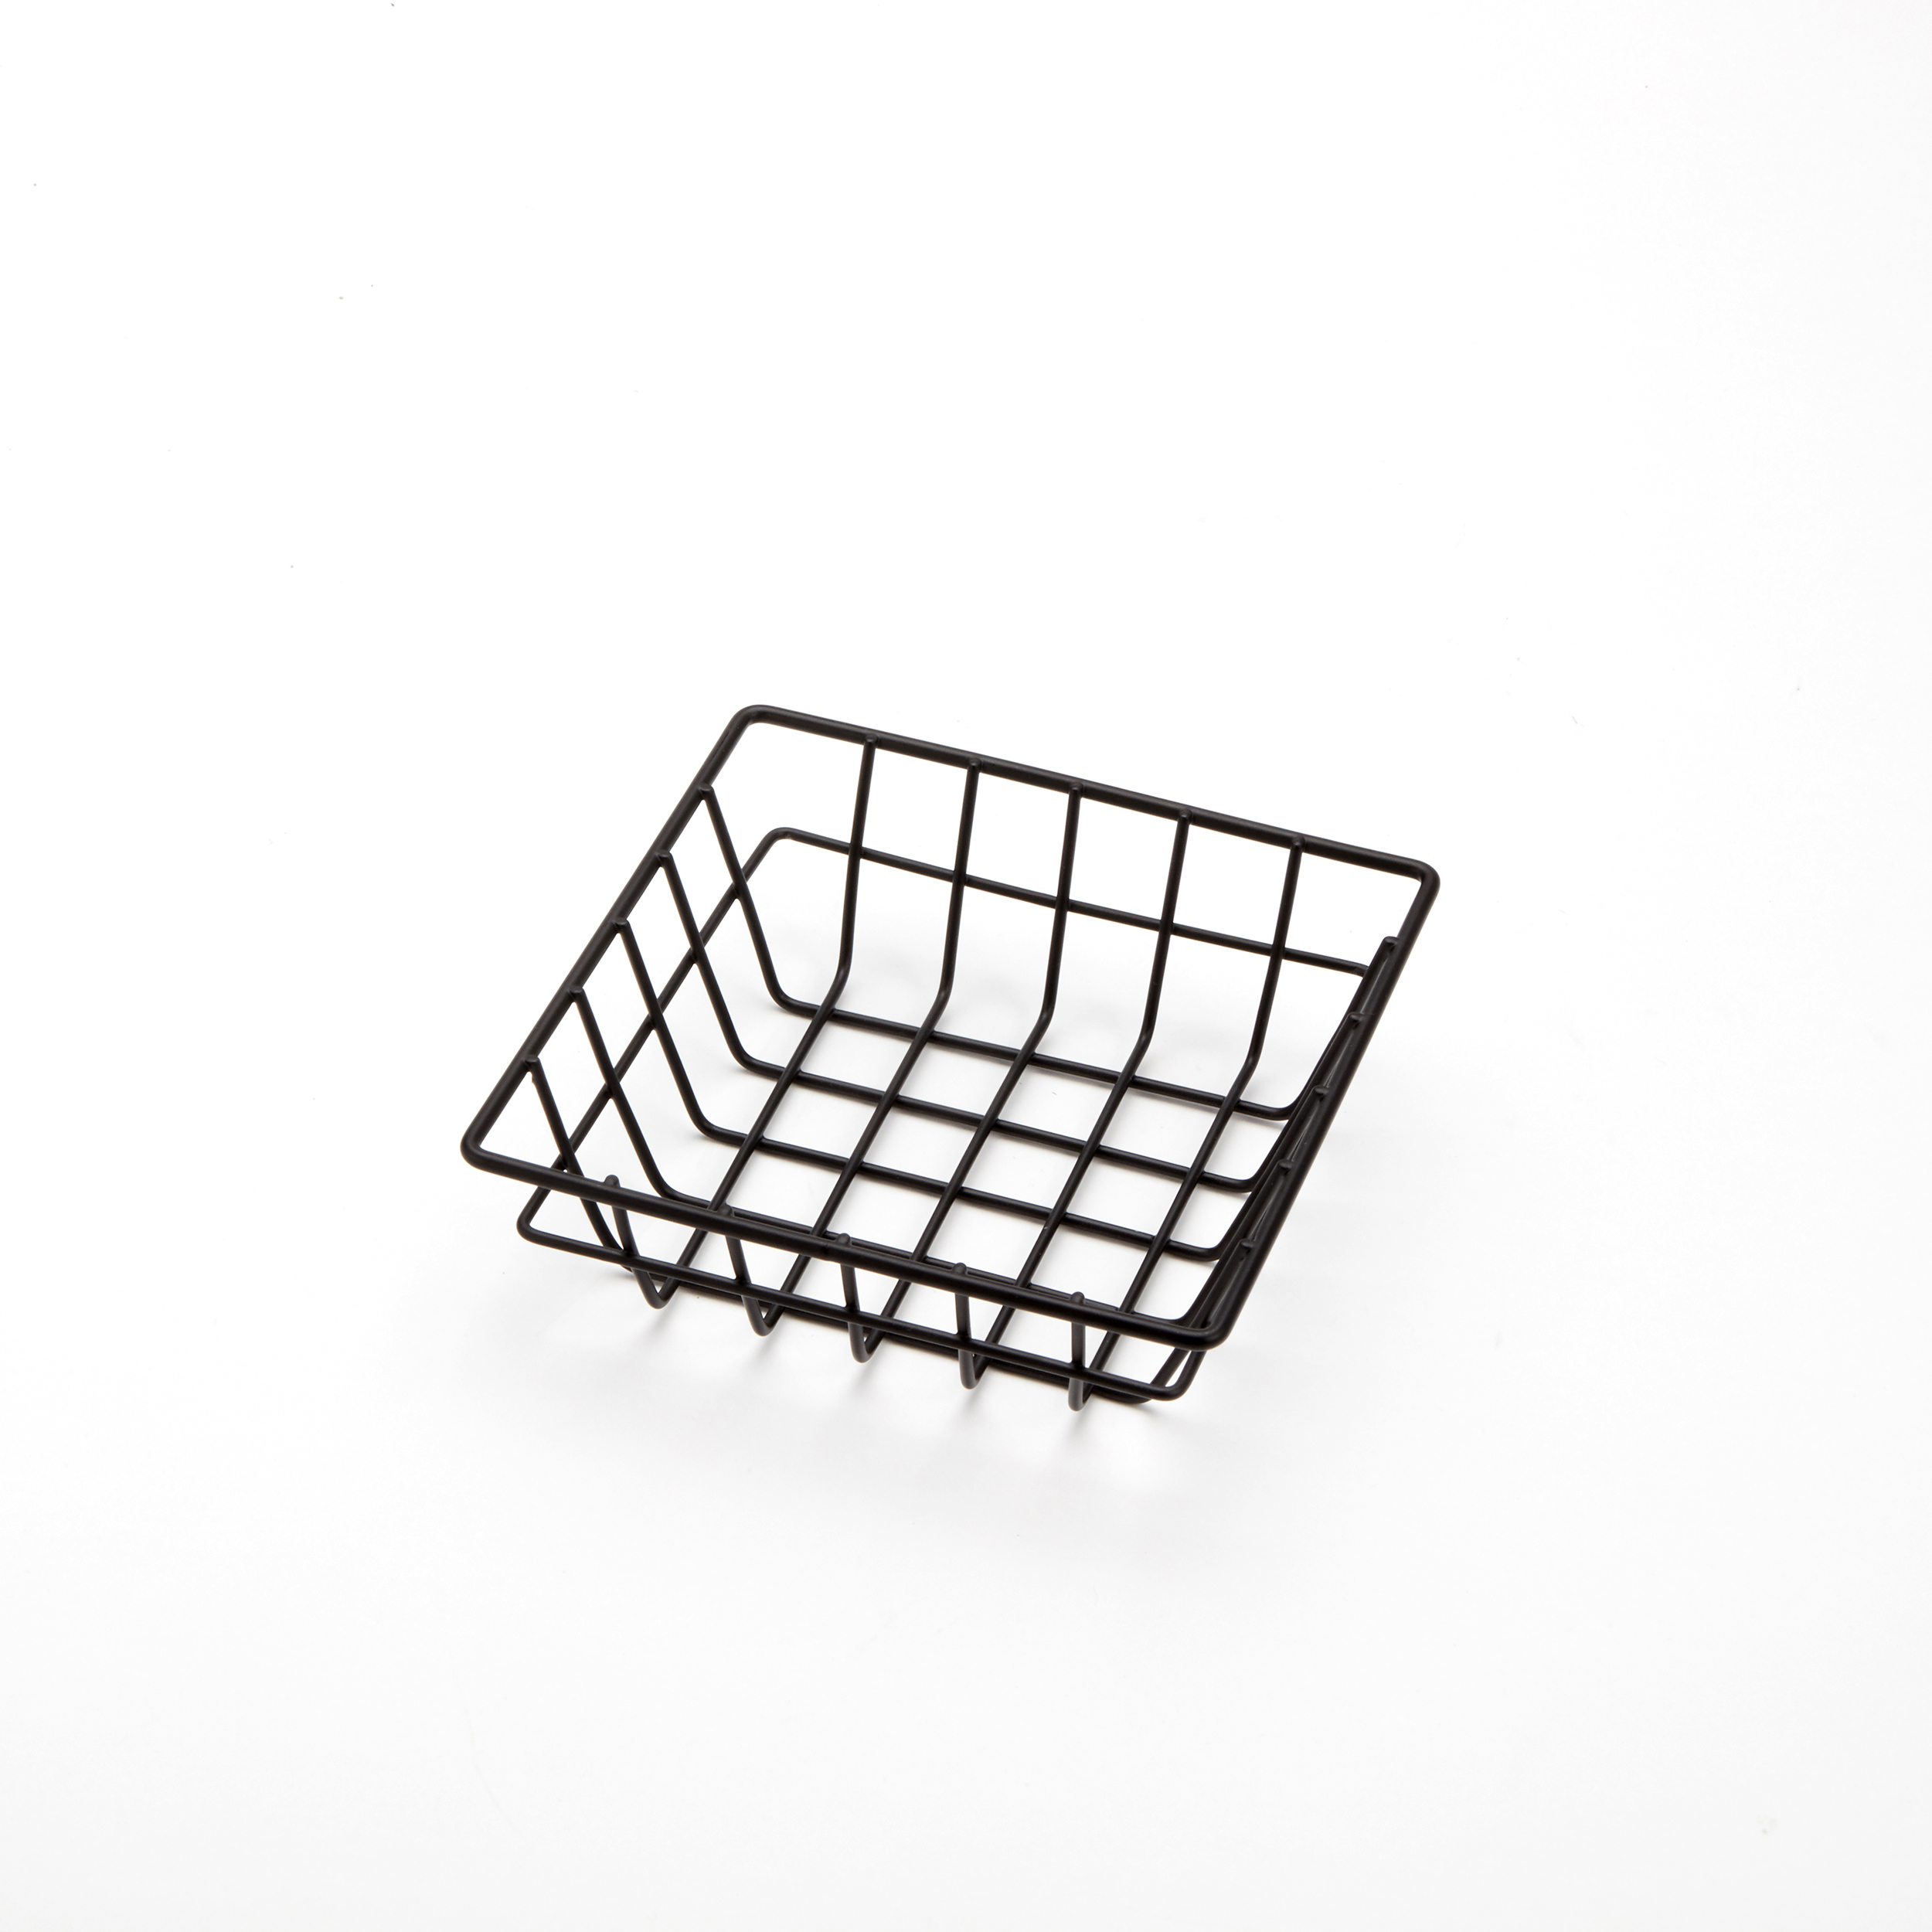 American Metalcraft SQGB6 basket, display, wire